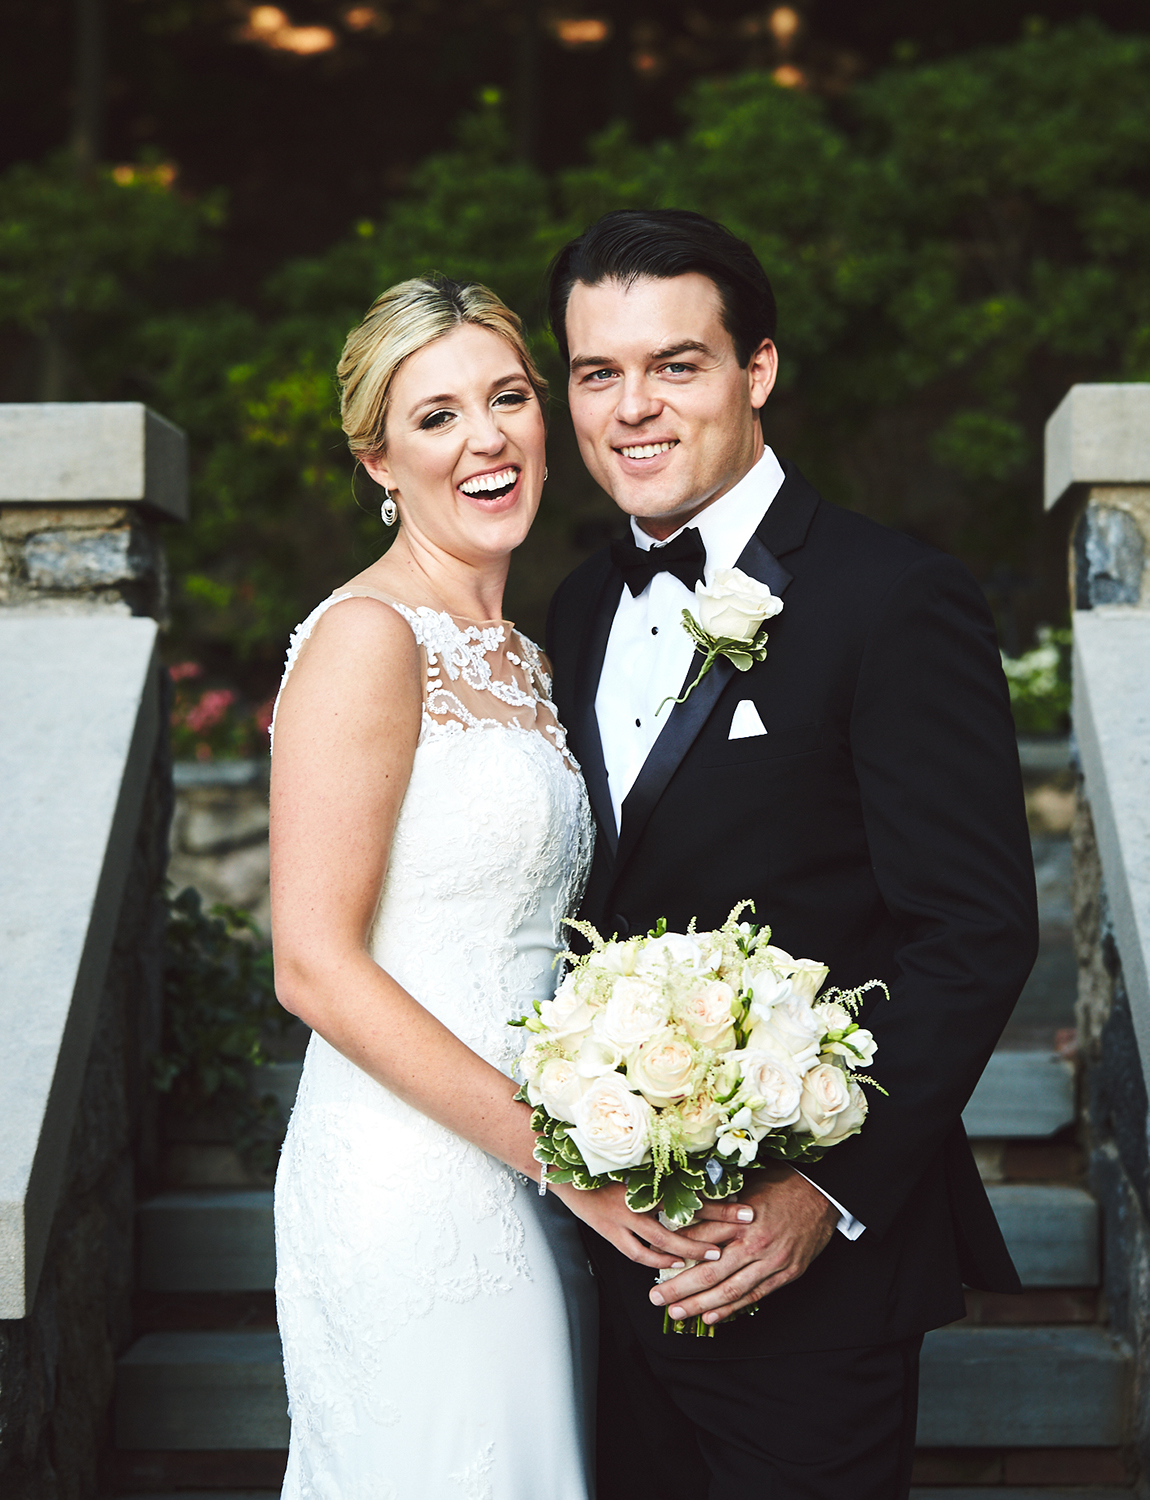 170804_TappanHillMansionWeddingPhotography_NYWeddingPhotographerBy_BriJohnsonWeddings_0081.jpg